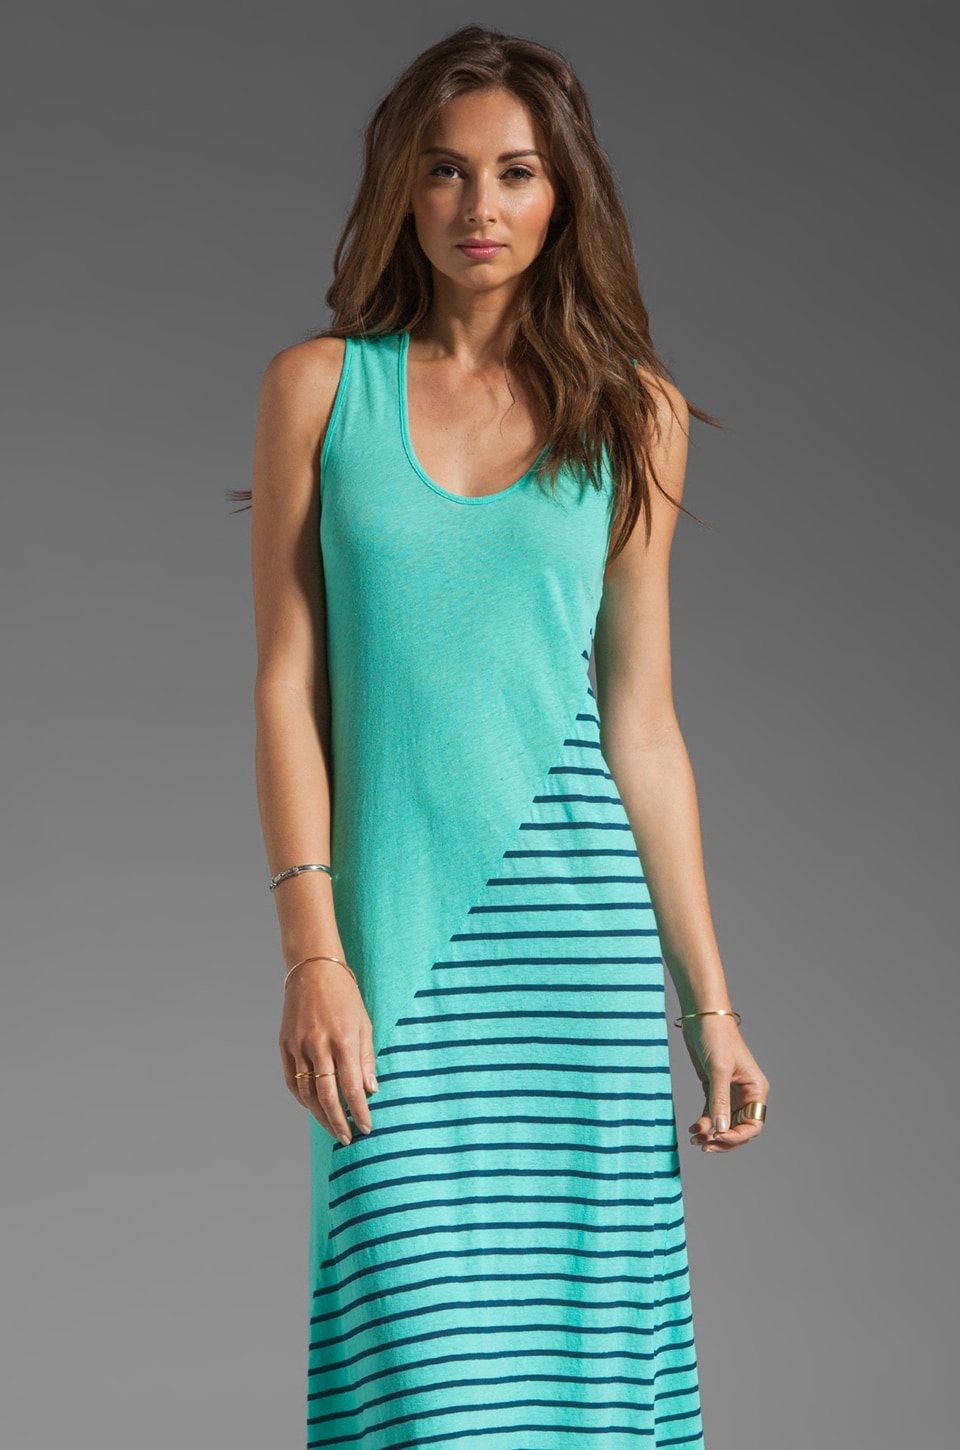 My Line Nico Tank Dress in Aqua